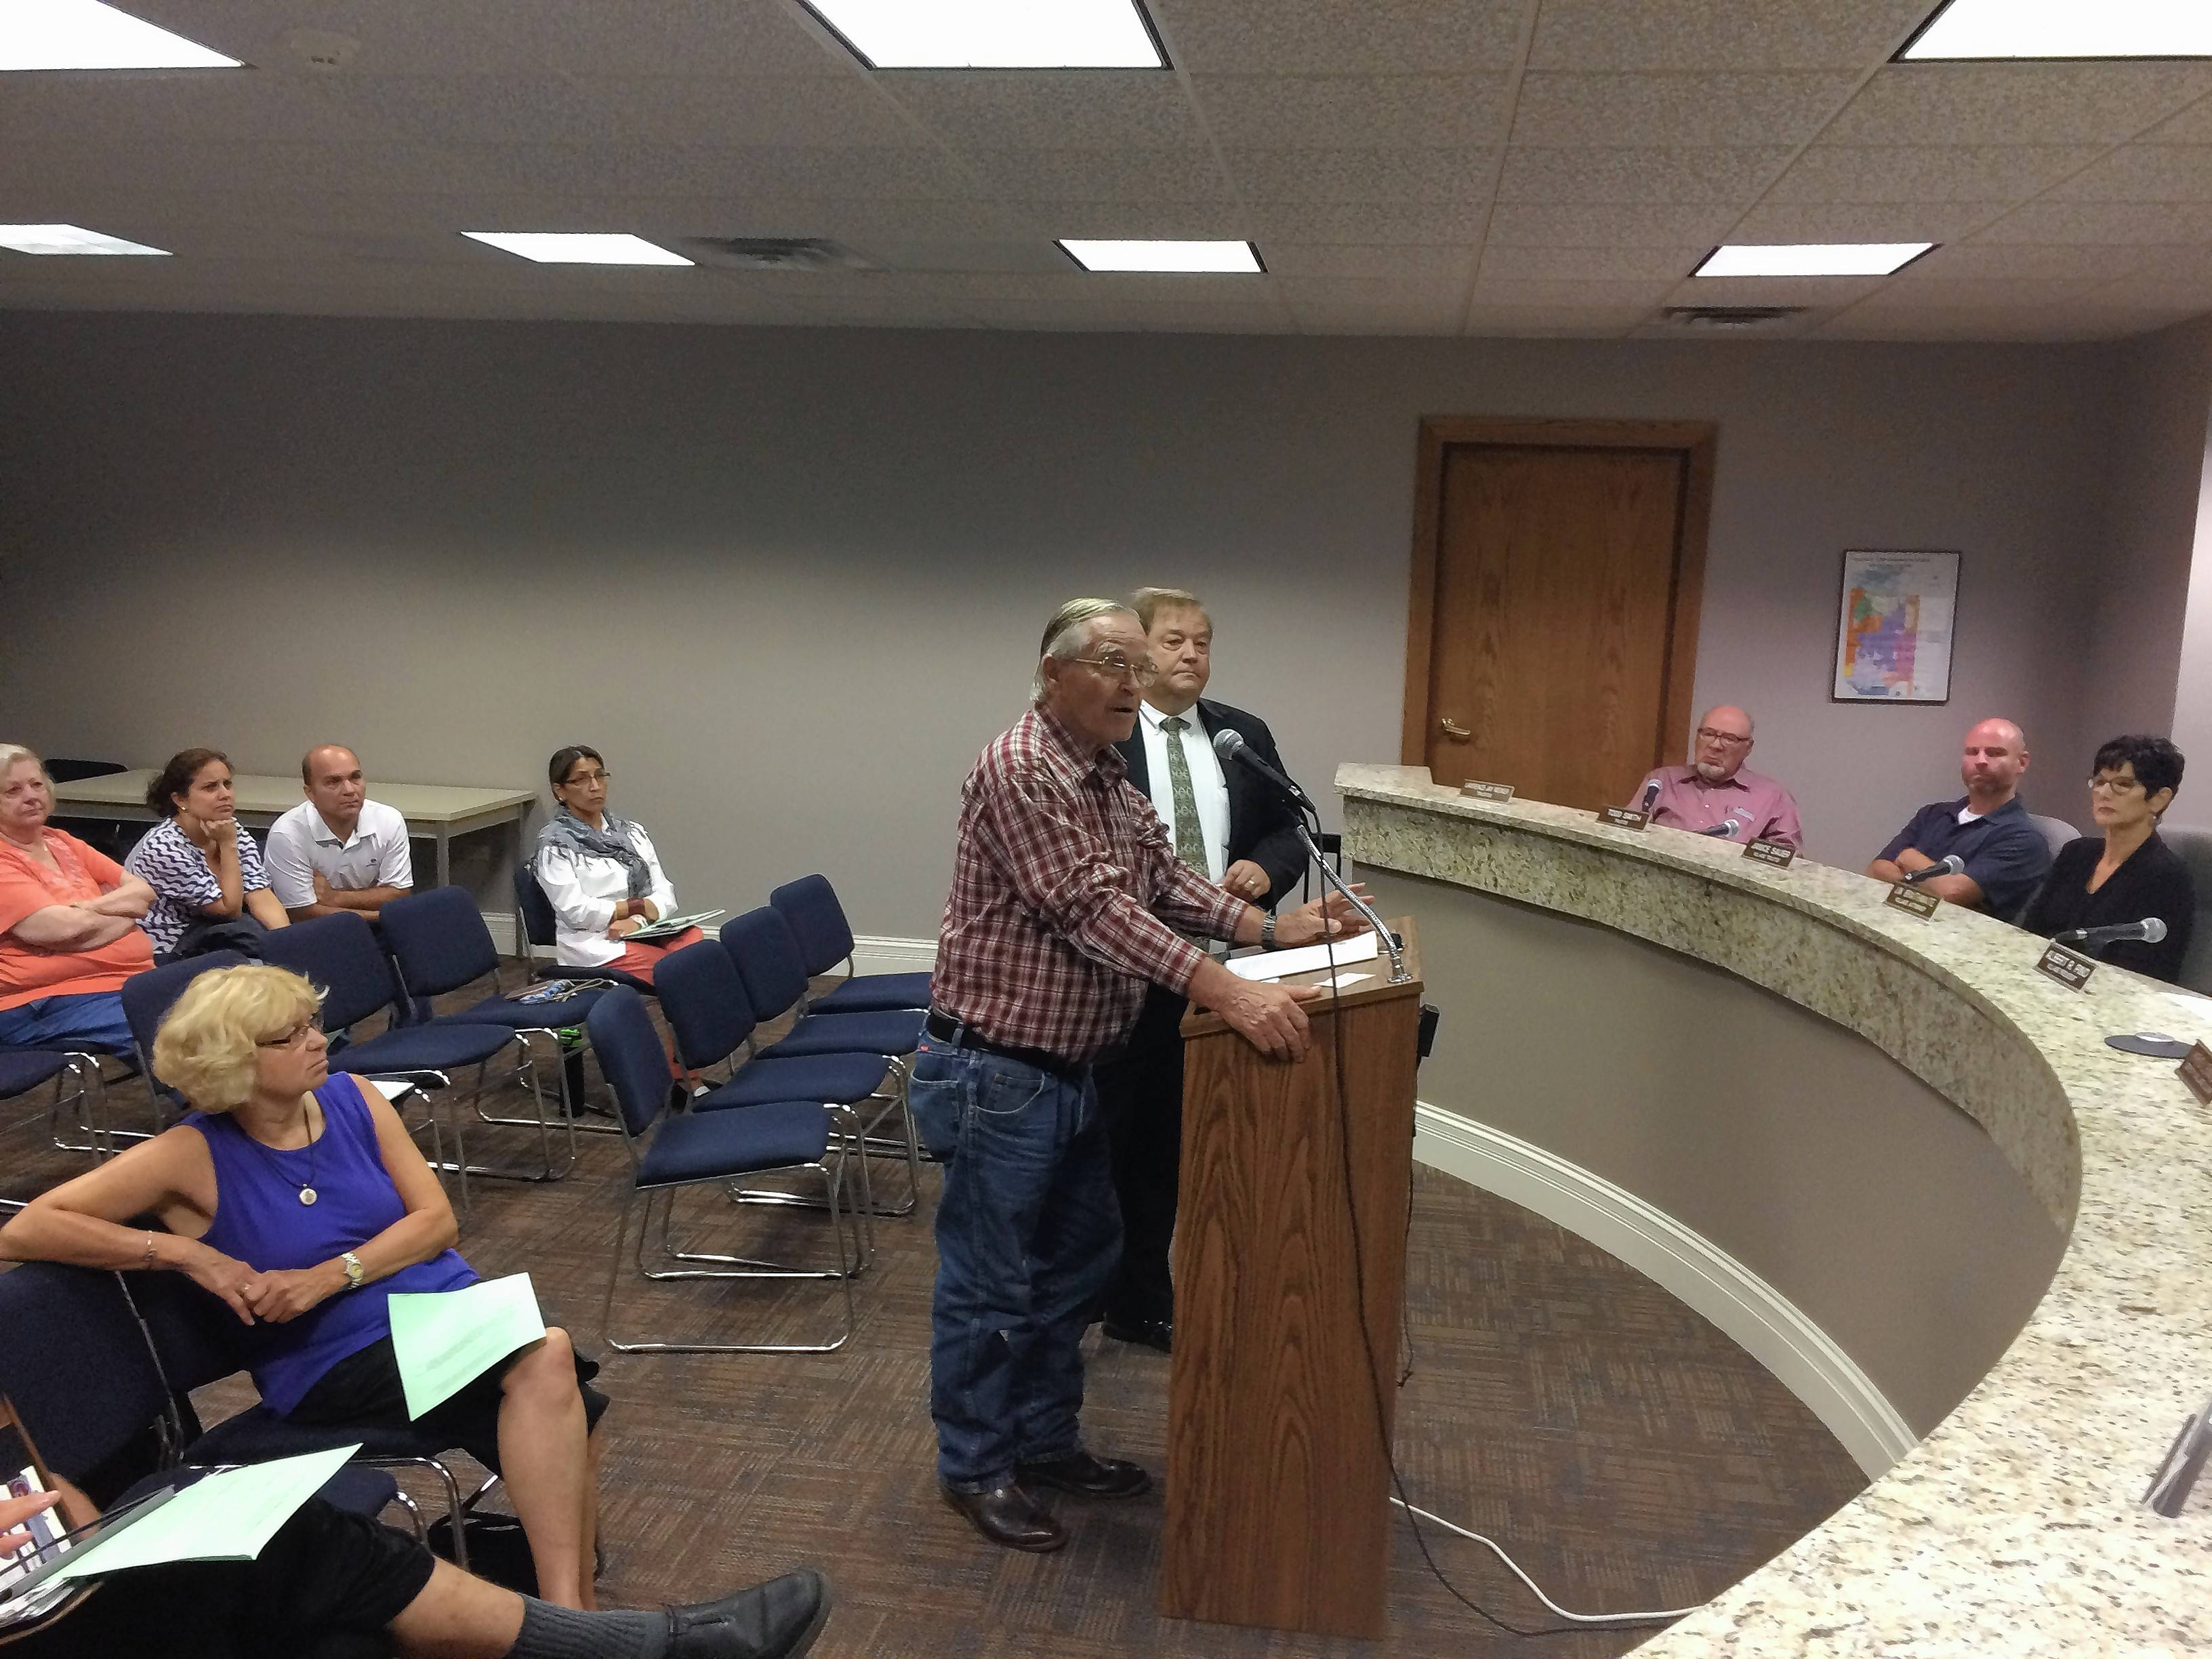 Kevin Johnson, foreground, who lives in unincorporated Lake County near North Barrington's border, opposes a plan for a large-scale poultry farm near his home. He was accomplained by his son, K.O., when he voiced concern to the North Barrington village board.